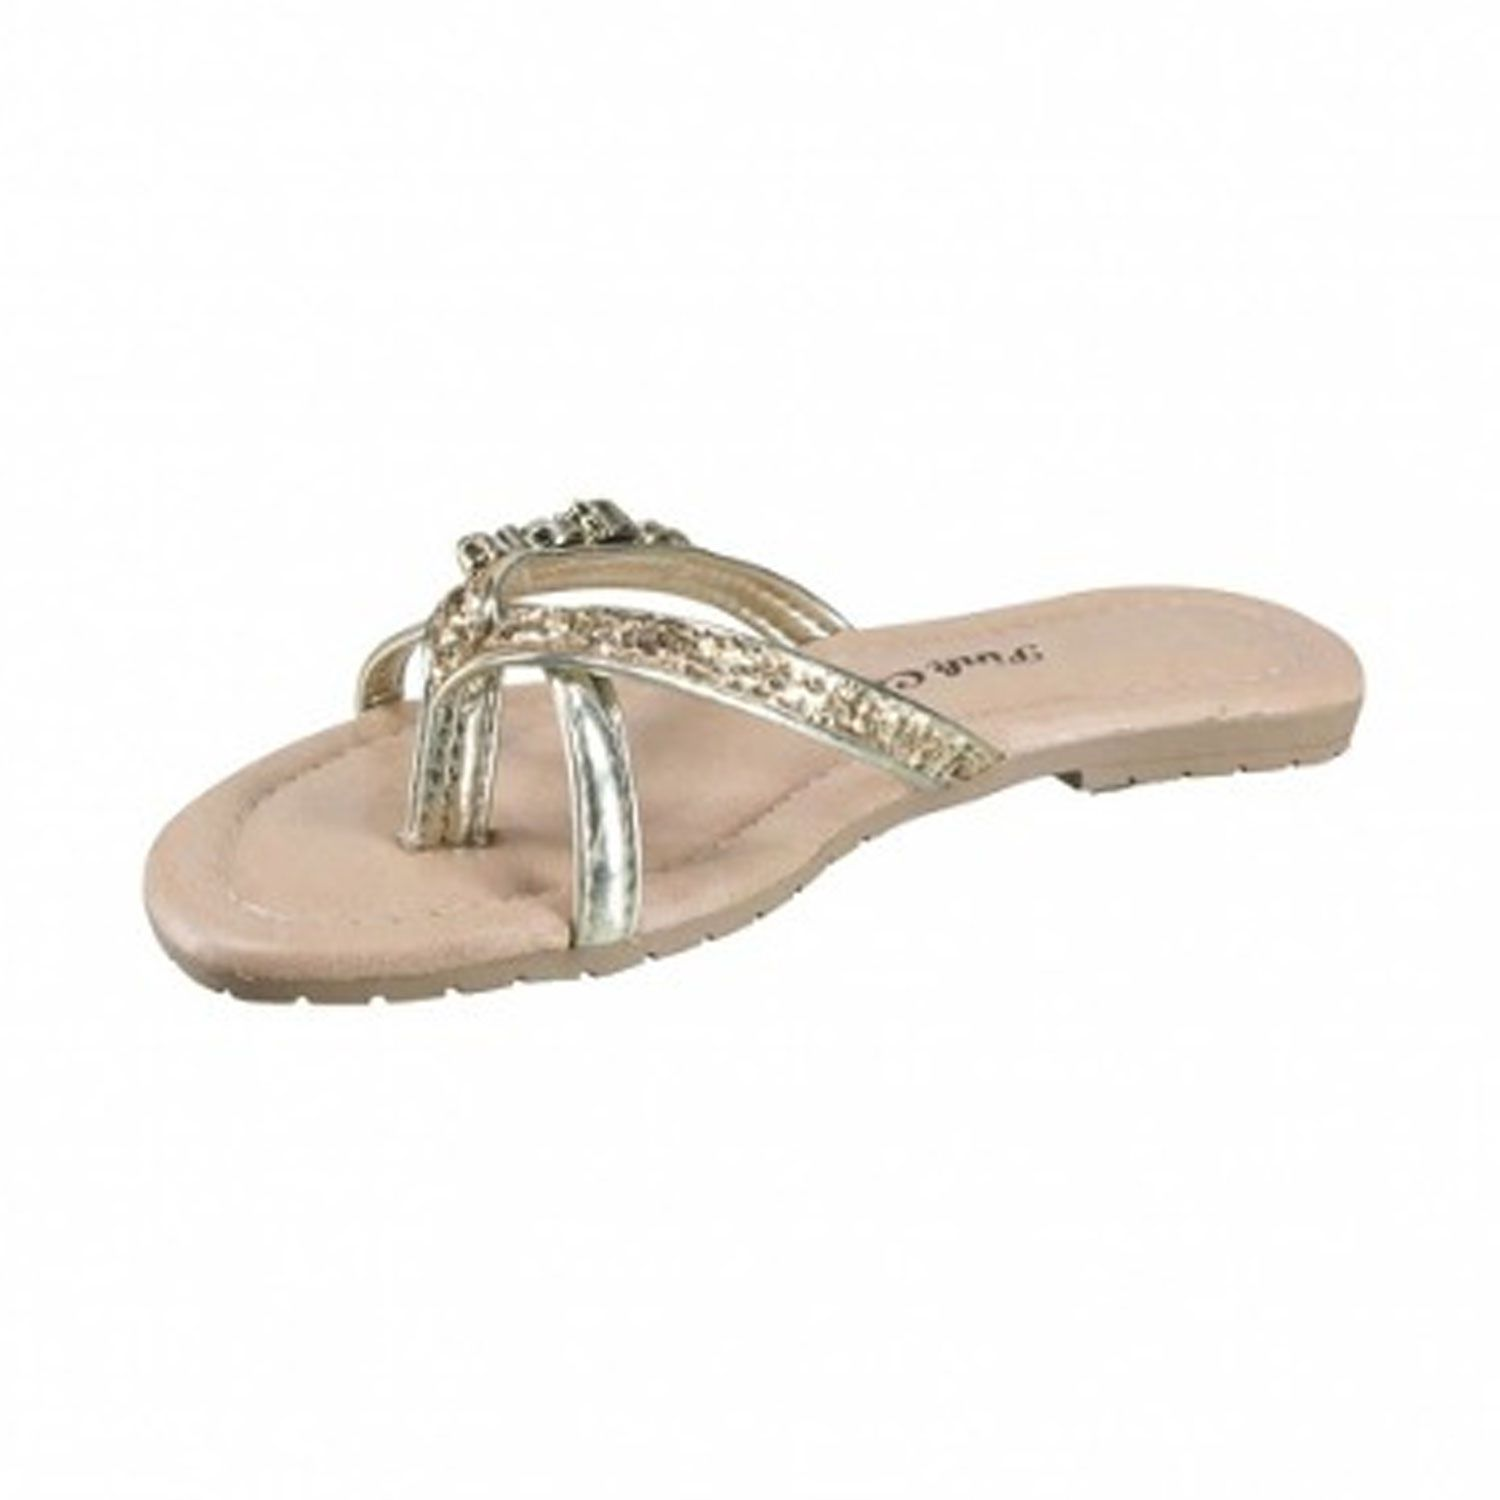 CHINELO INFANTIL PINKCATS REF:9324 28/36